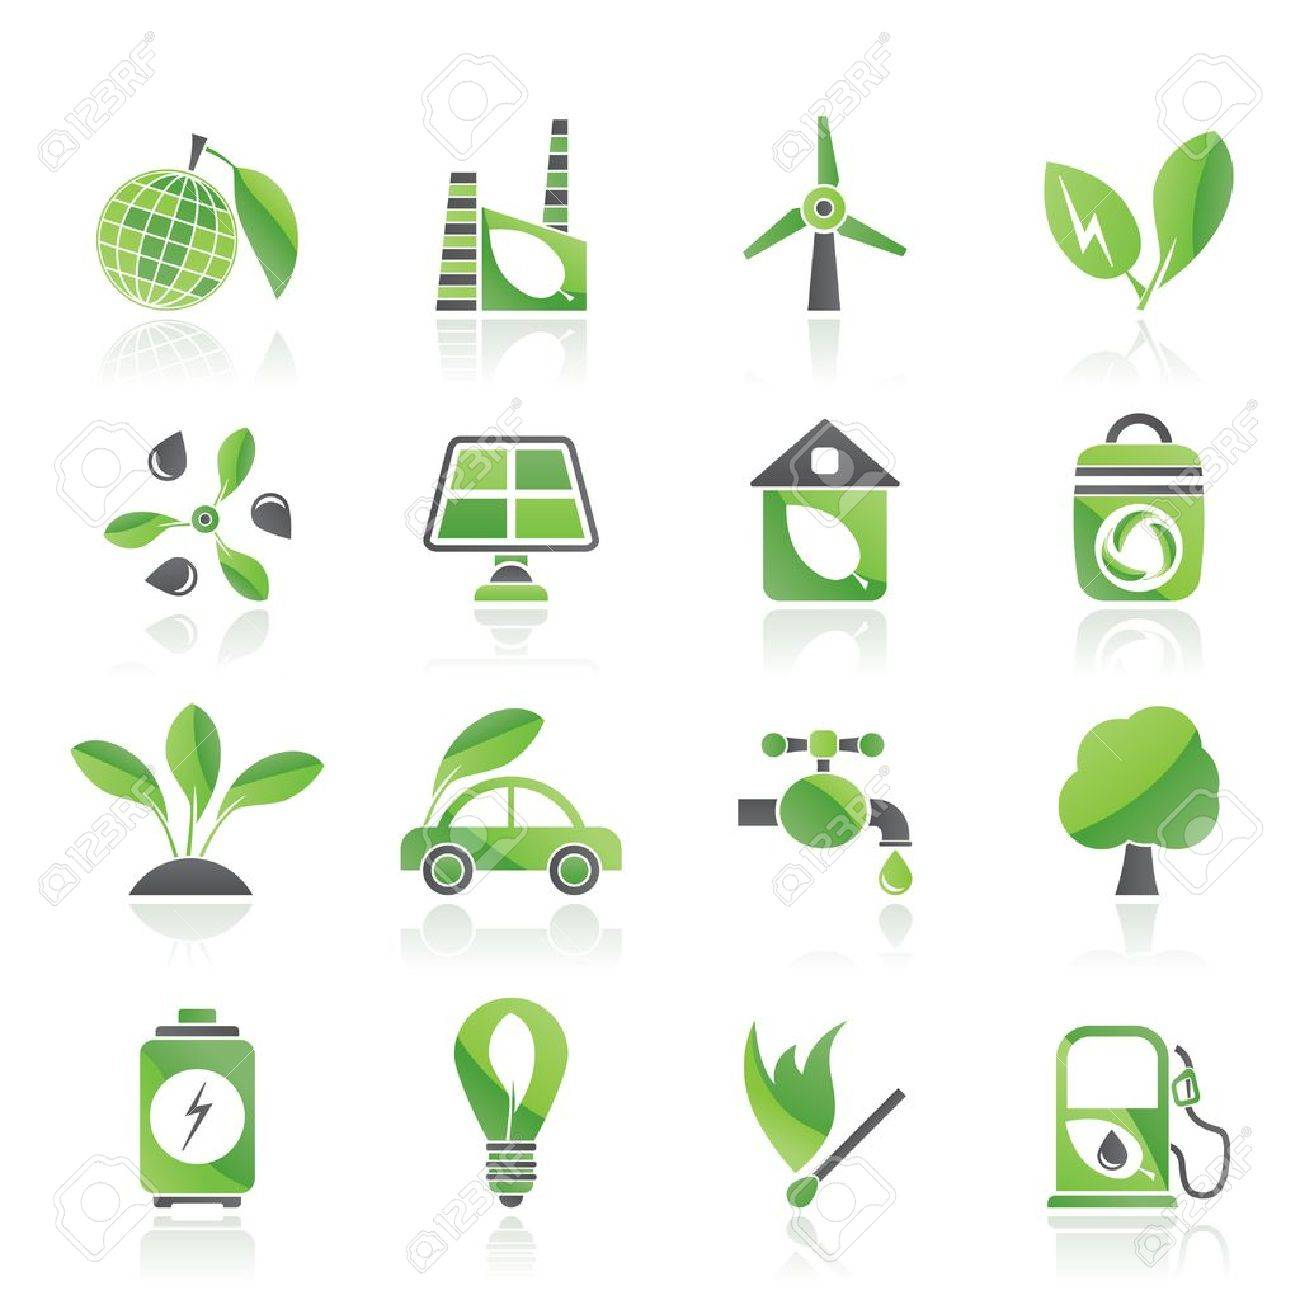 Green, Environment and ecology Icons - vector icon set Stock Vector - 12853125